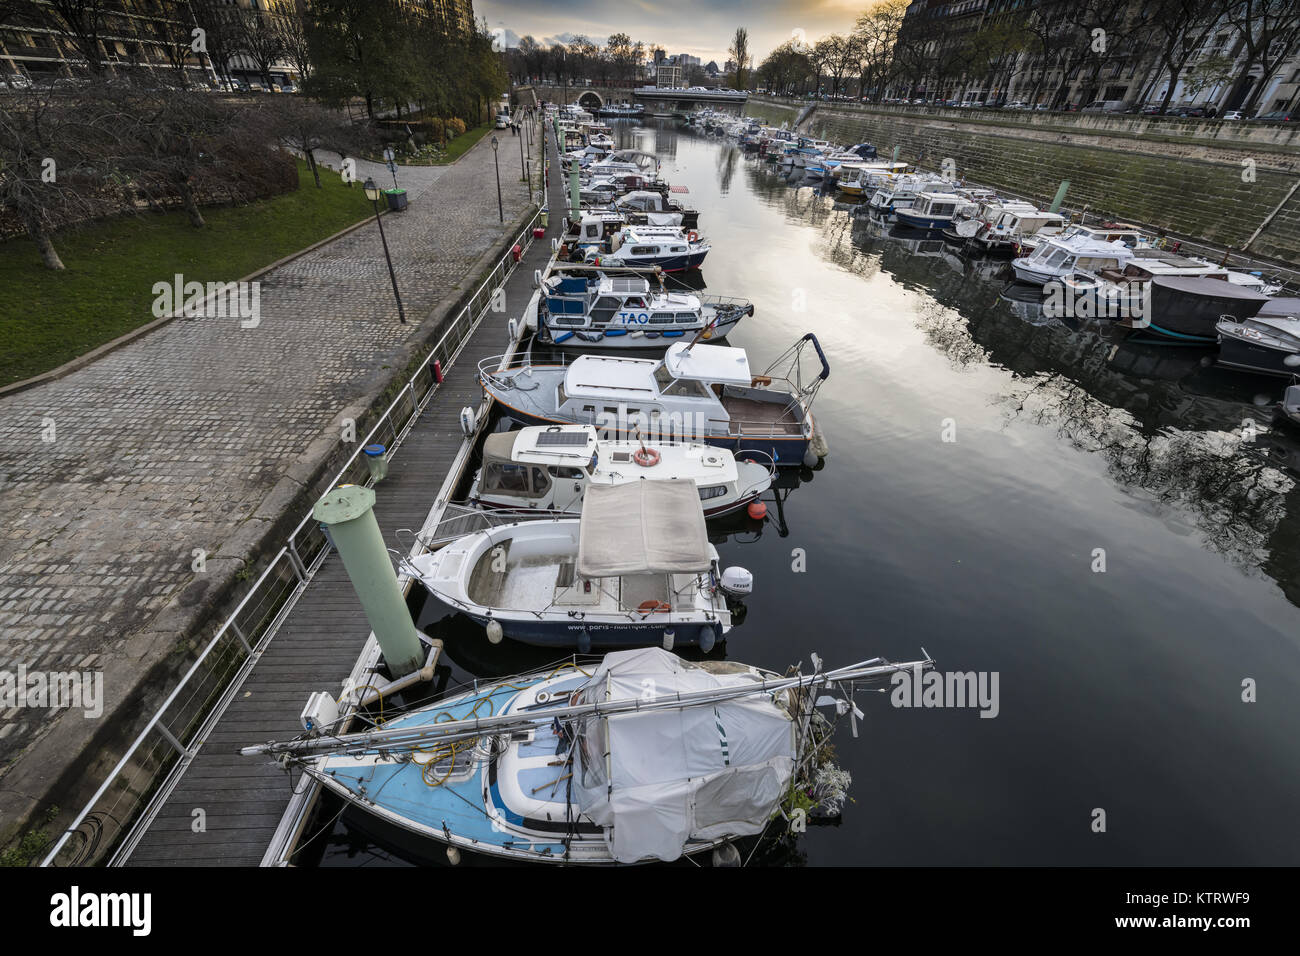 The Canal Saint-Martin is a 4.6 km (2.86 mi) long canal in Paris, connecting the Canal de l'Ourcq to the river - Stock Image